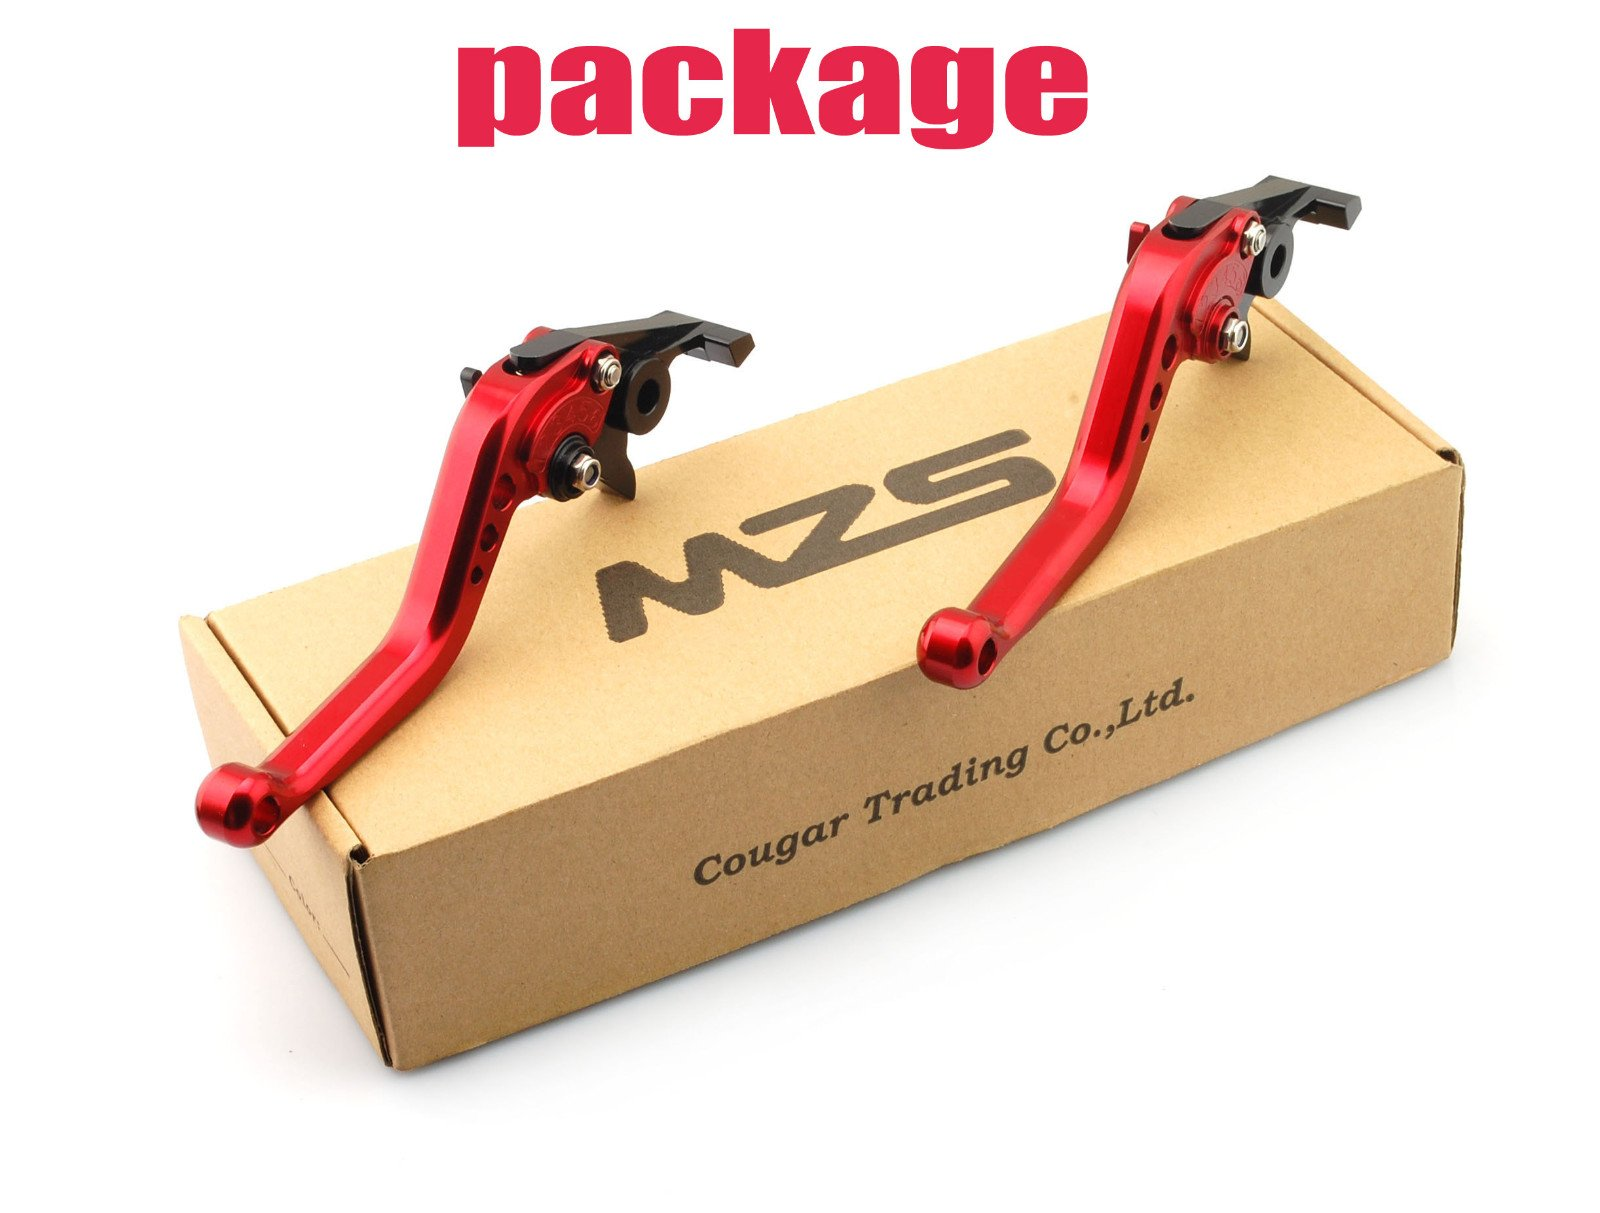 LUO Adjustable CNC Long Brake Clutch Levers for Suzuki GS500 1989-2008,GS500E 1994-1998,GS500F 2004-2009,GSF250 Bandit All Years,GSF600 Bandit 1995-1999,GSF600S Bandit 1996-2003-Black